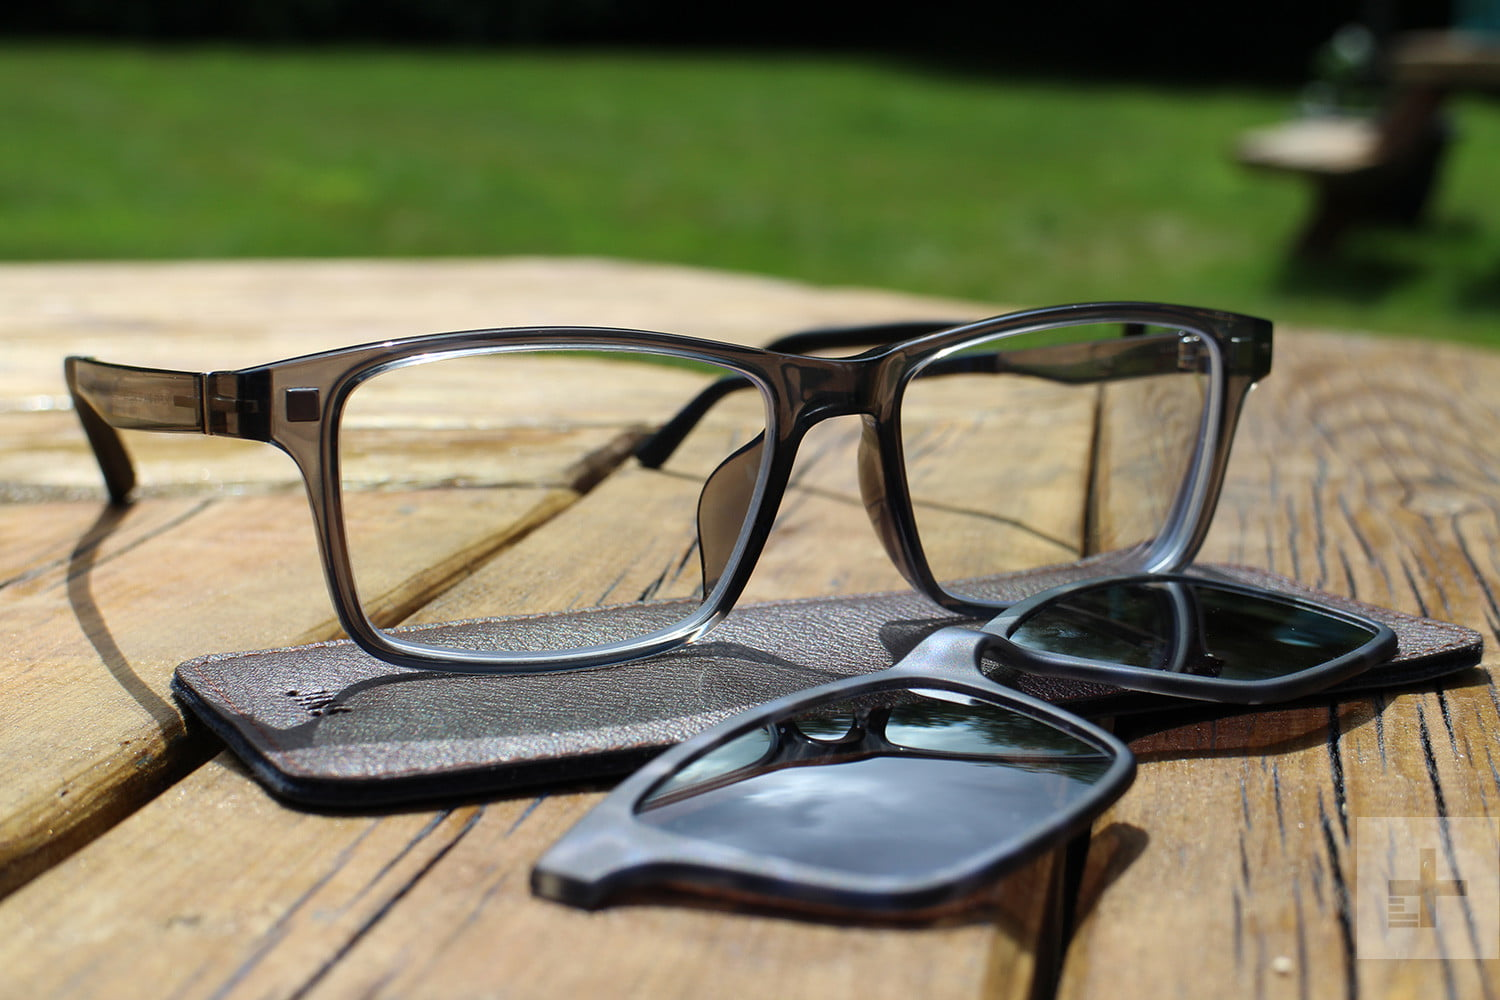 9d8ad2f91d Jins Frontswitch Glasses Review | Digital Trends